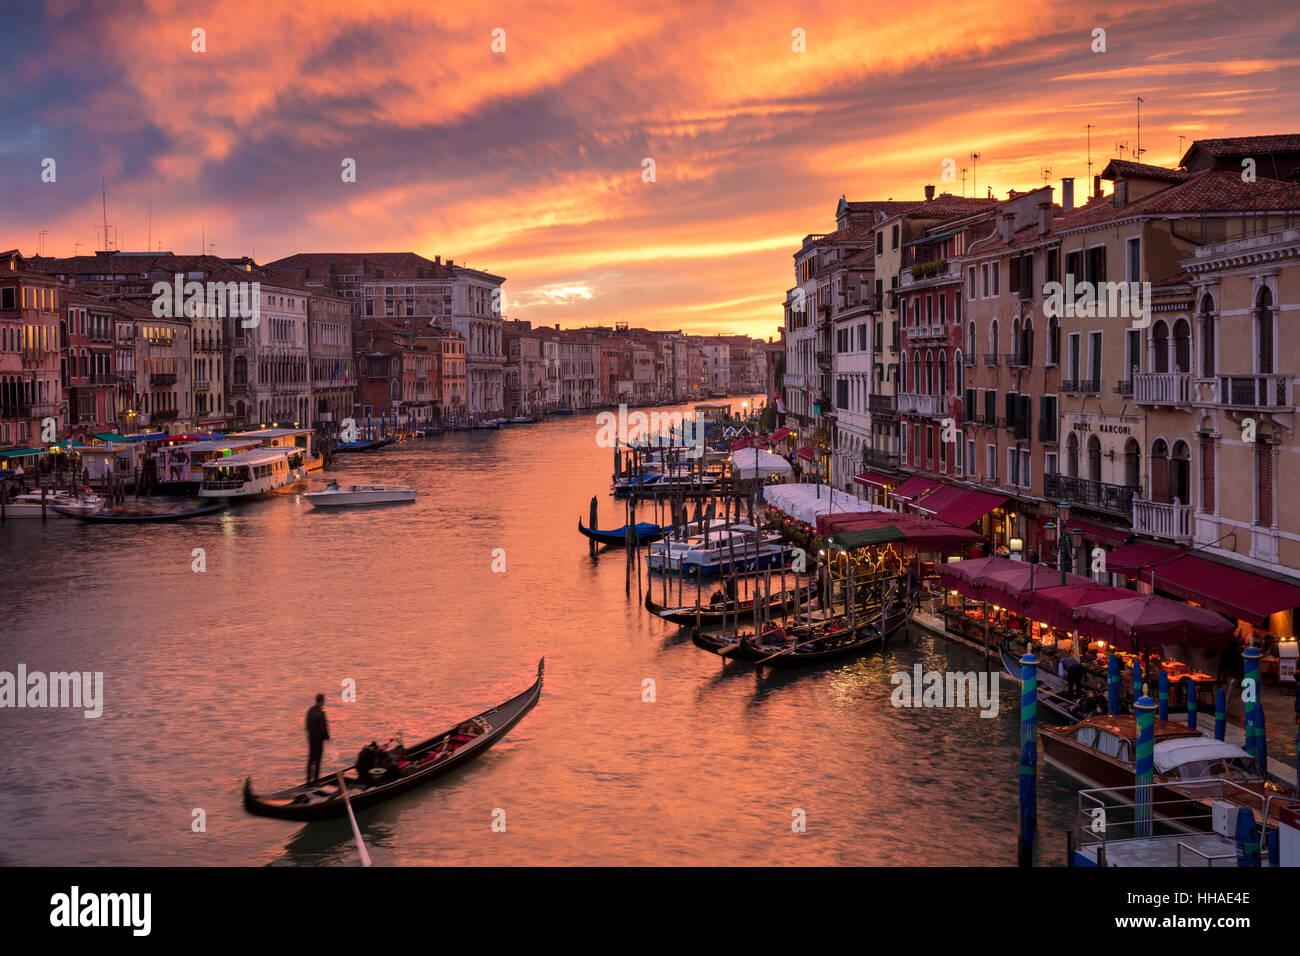 Colorful evening over the Grand Canal and city of Venice, Veneto, Italy - Stock Image